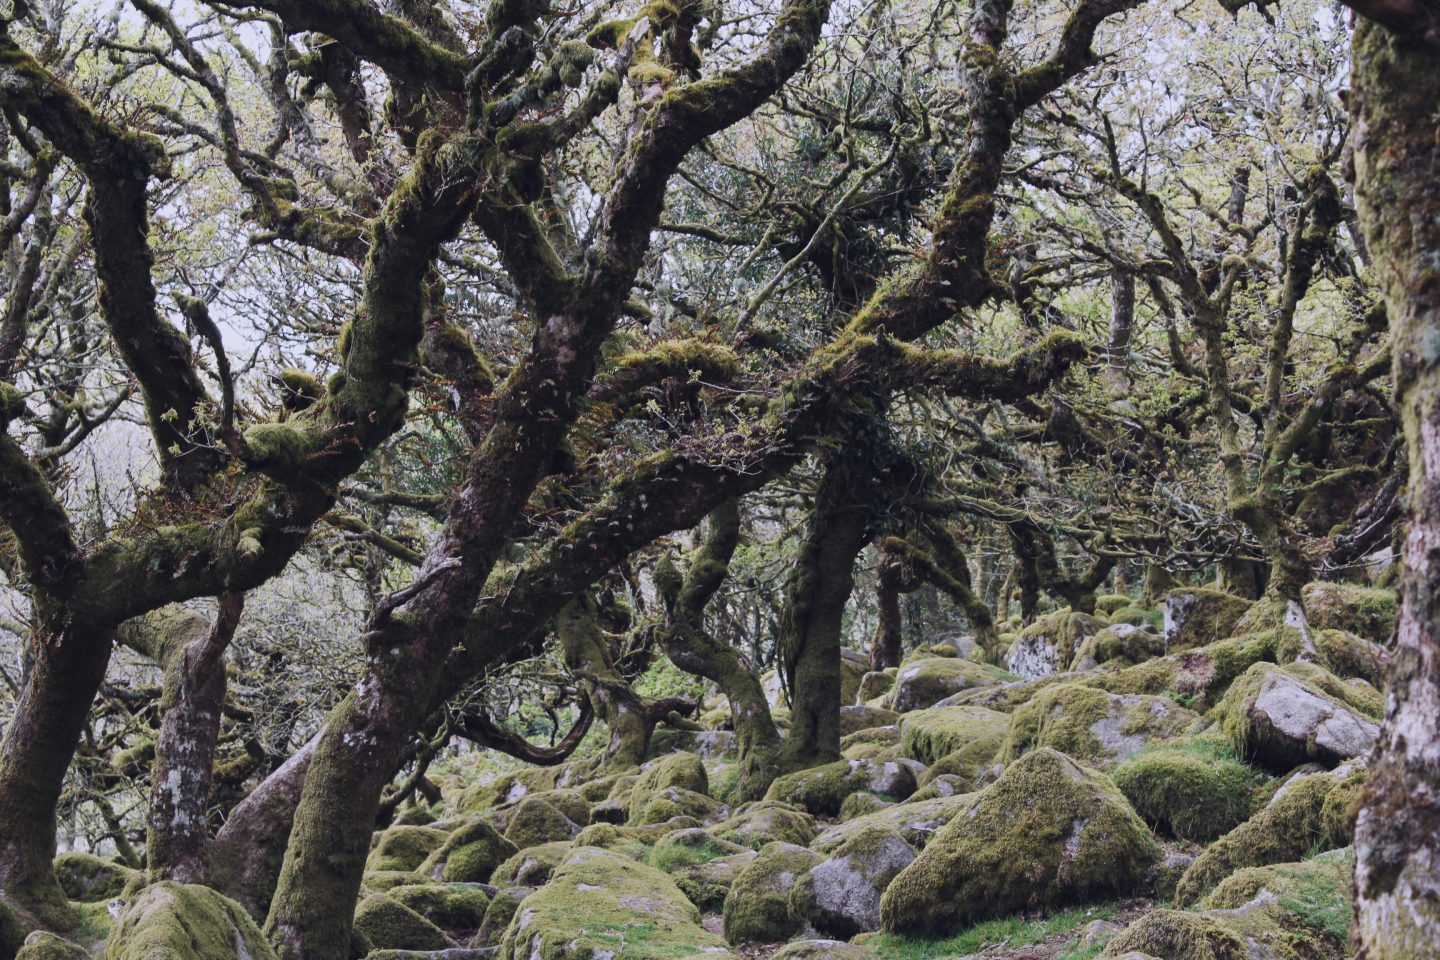 Oak Trees in Wistman's Wood, Dartmoor